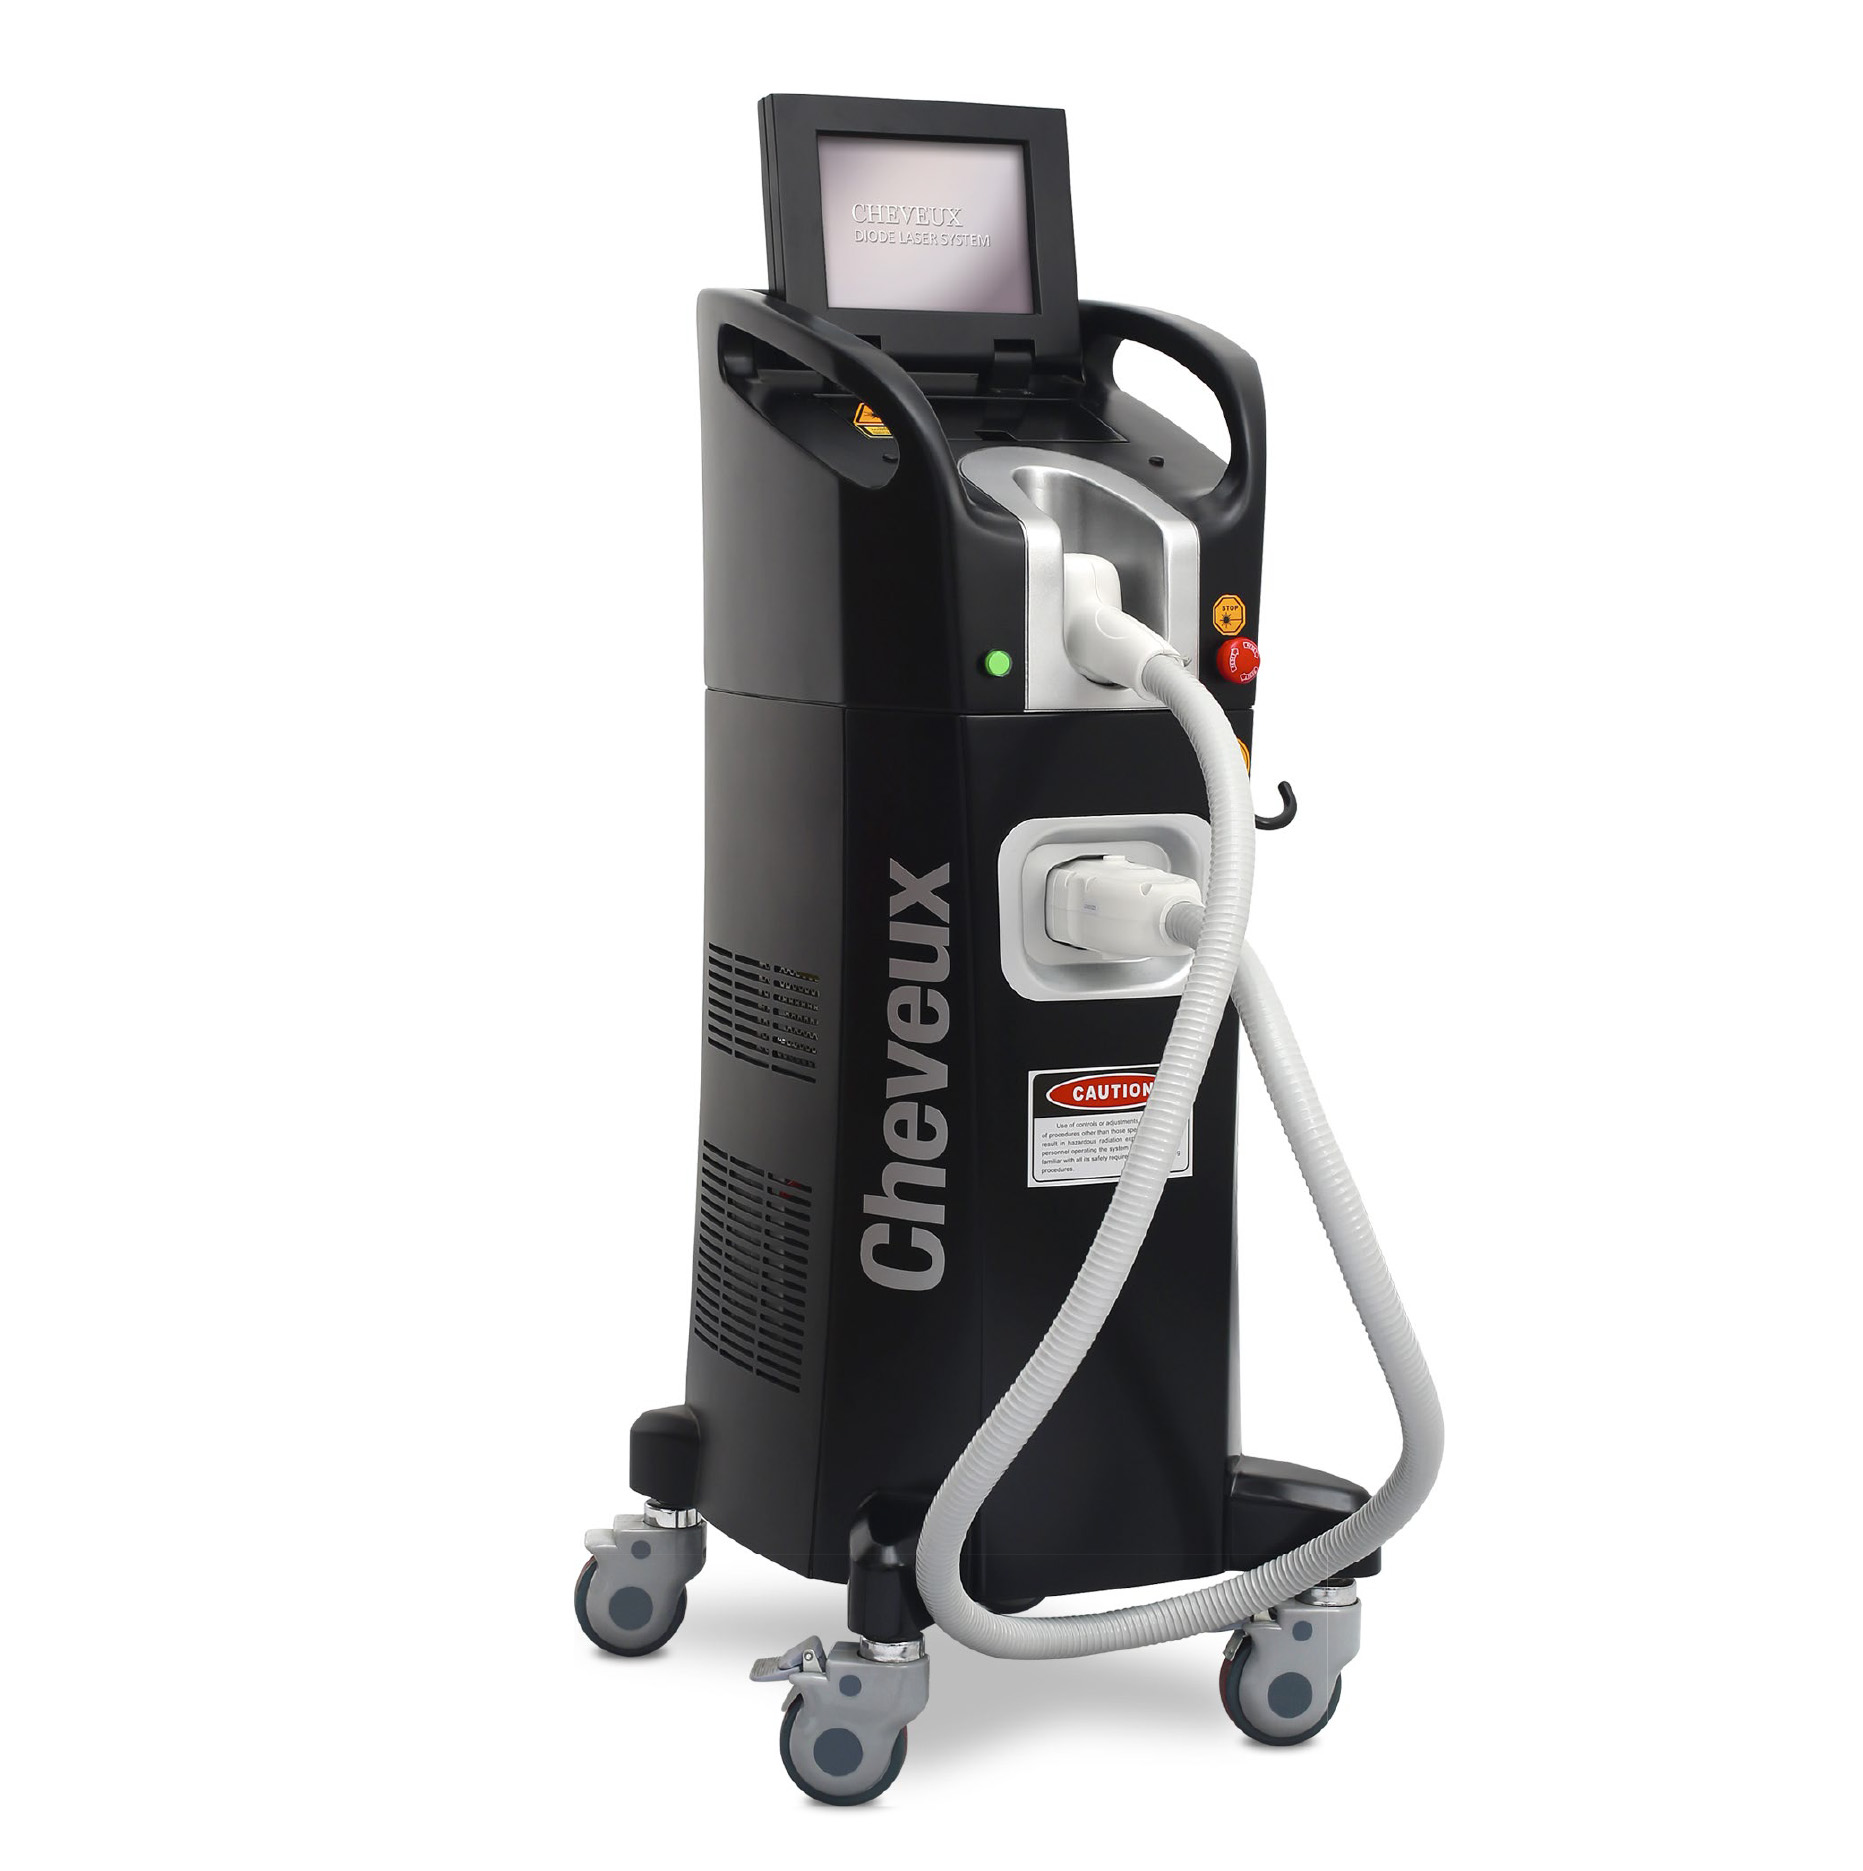 Cheveux 810 Diode Laser (Permanent Hair Removal Machine)